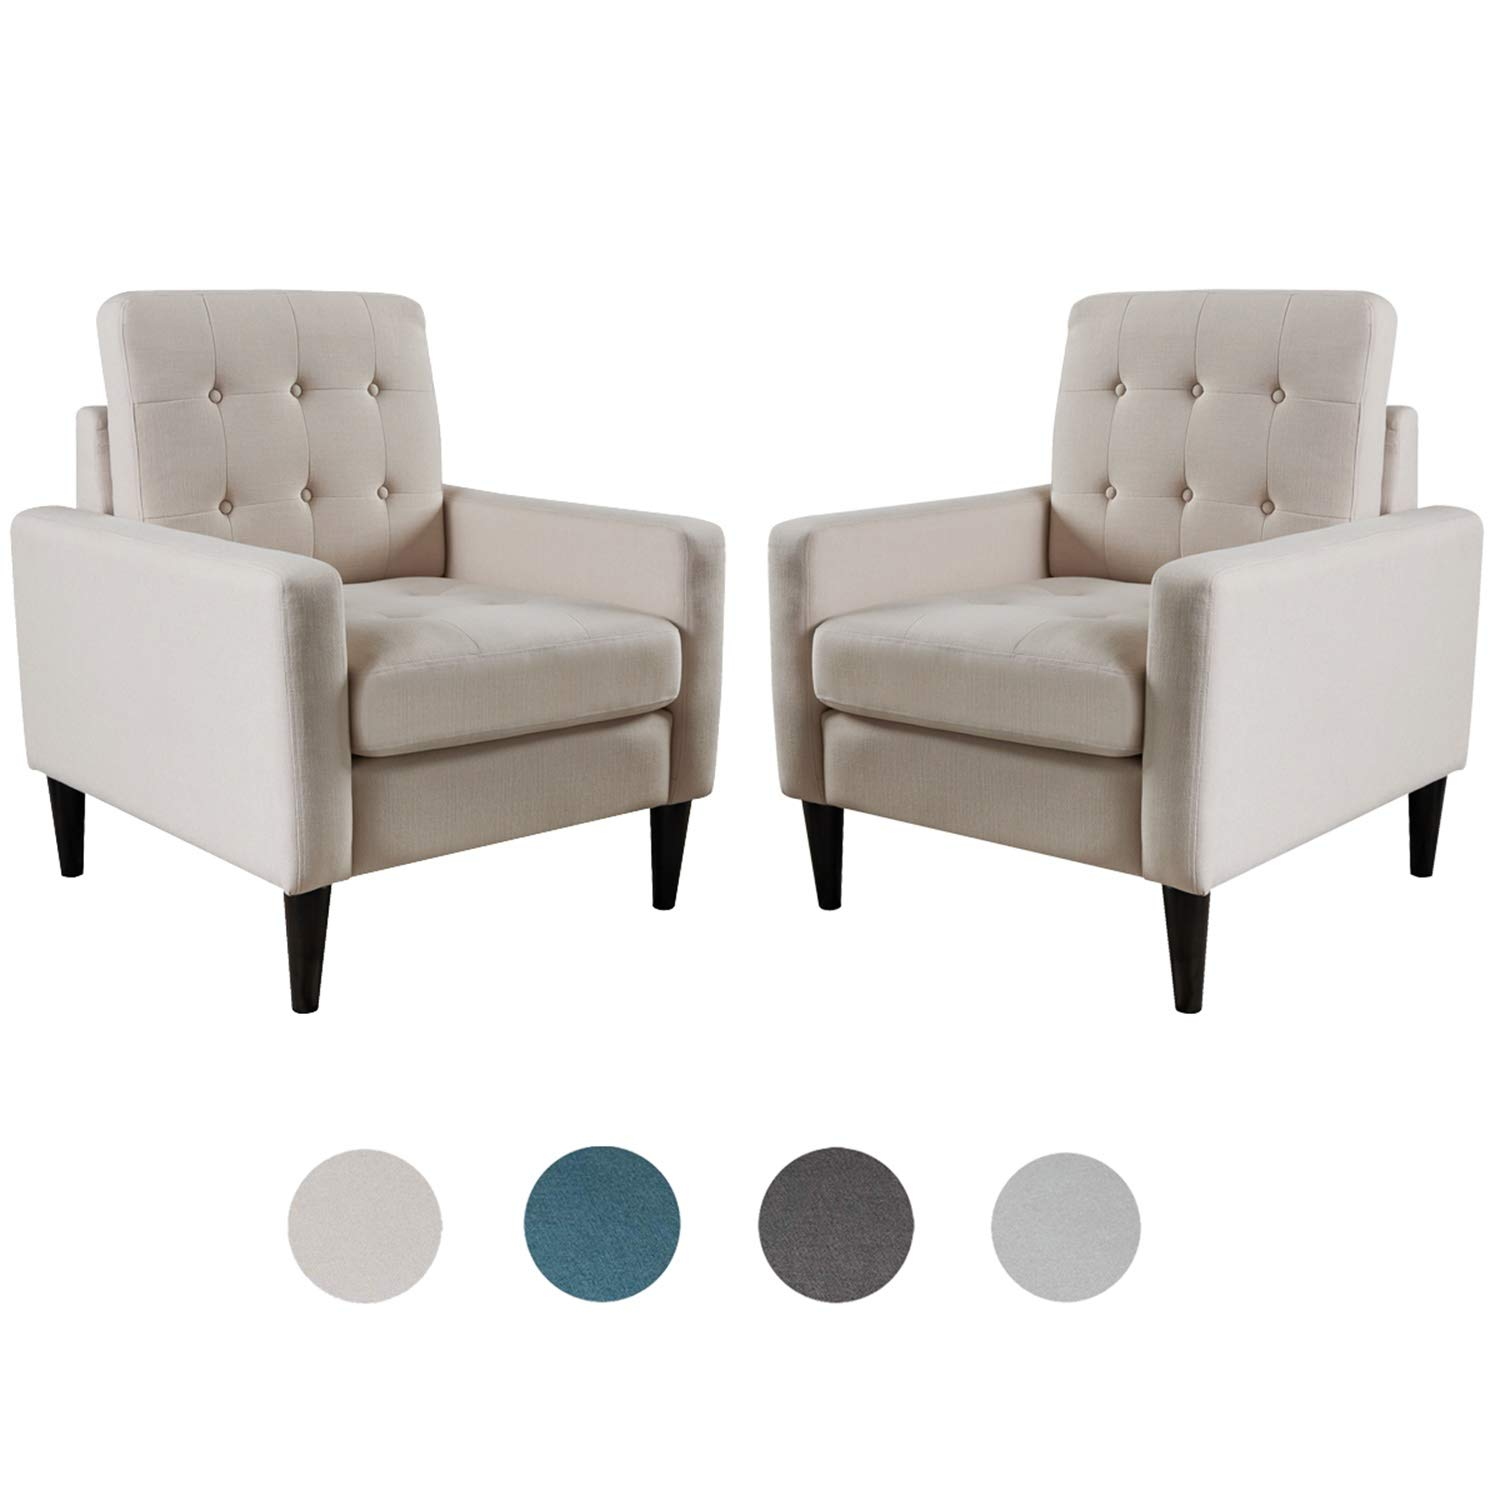 Top Space Accent Chair Living Room Chairs Arm Chair Single Sofa Upholstered Gray Comfy Fabric Mid-Century Modern Furniture for Bedroom Office (2PCS-1, White) by Top Space